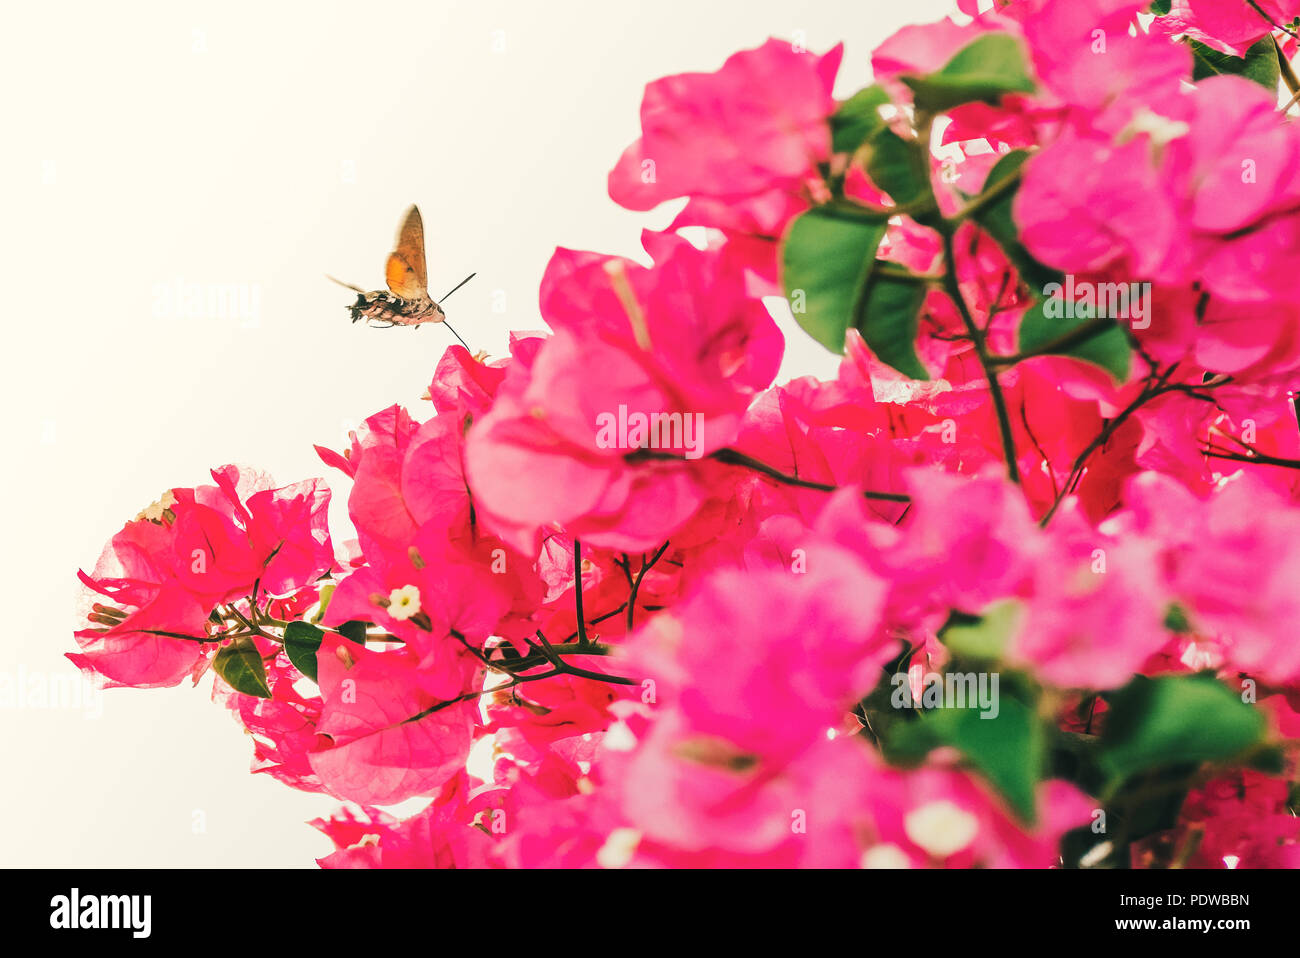 Hummingbird hawk moth flying hovering in spain above pink bougainvillea flowers. The curled tounge like proboscis can be seen. - Stock Image